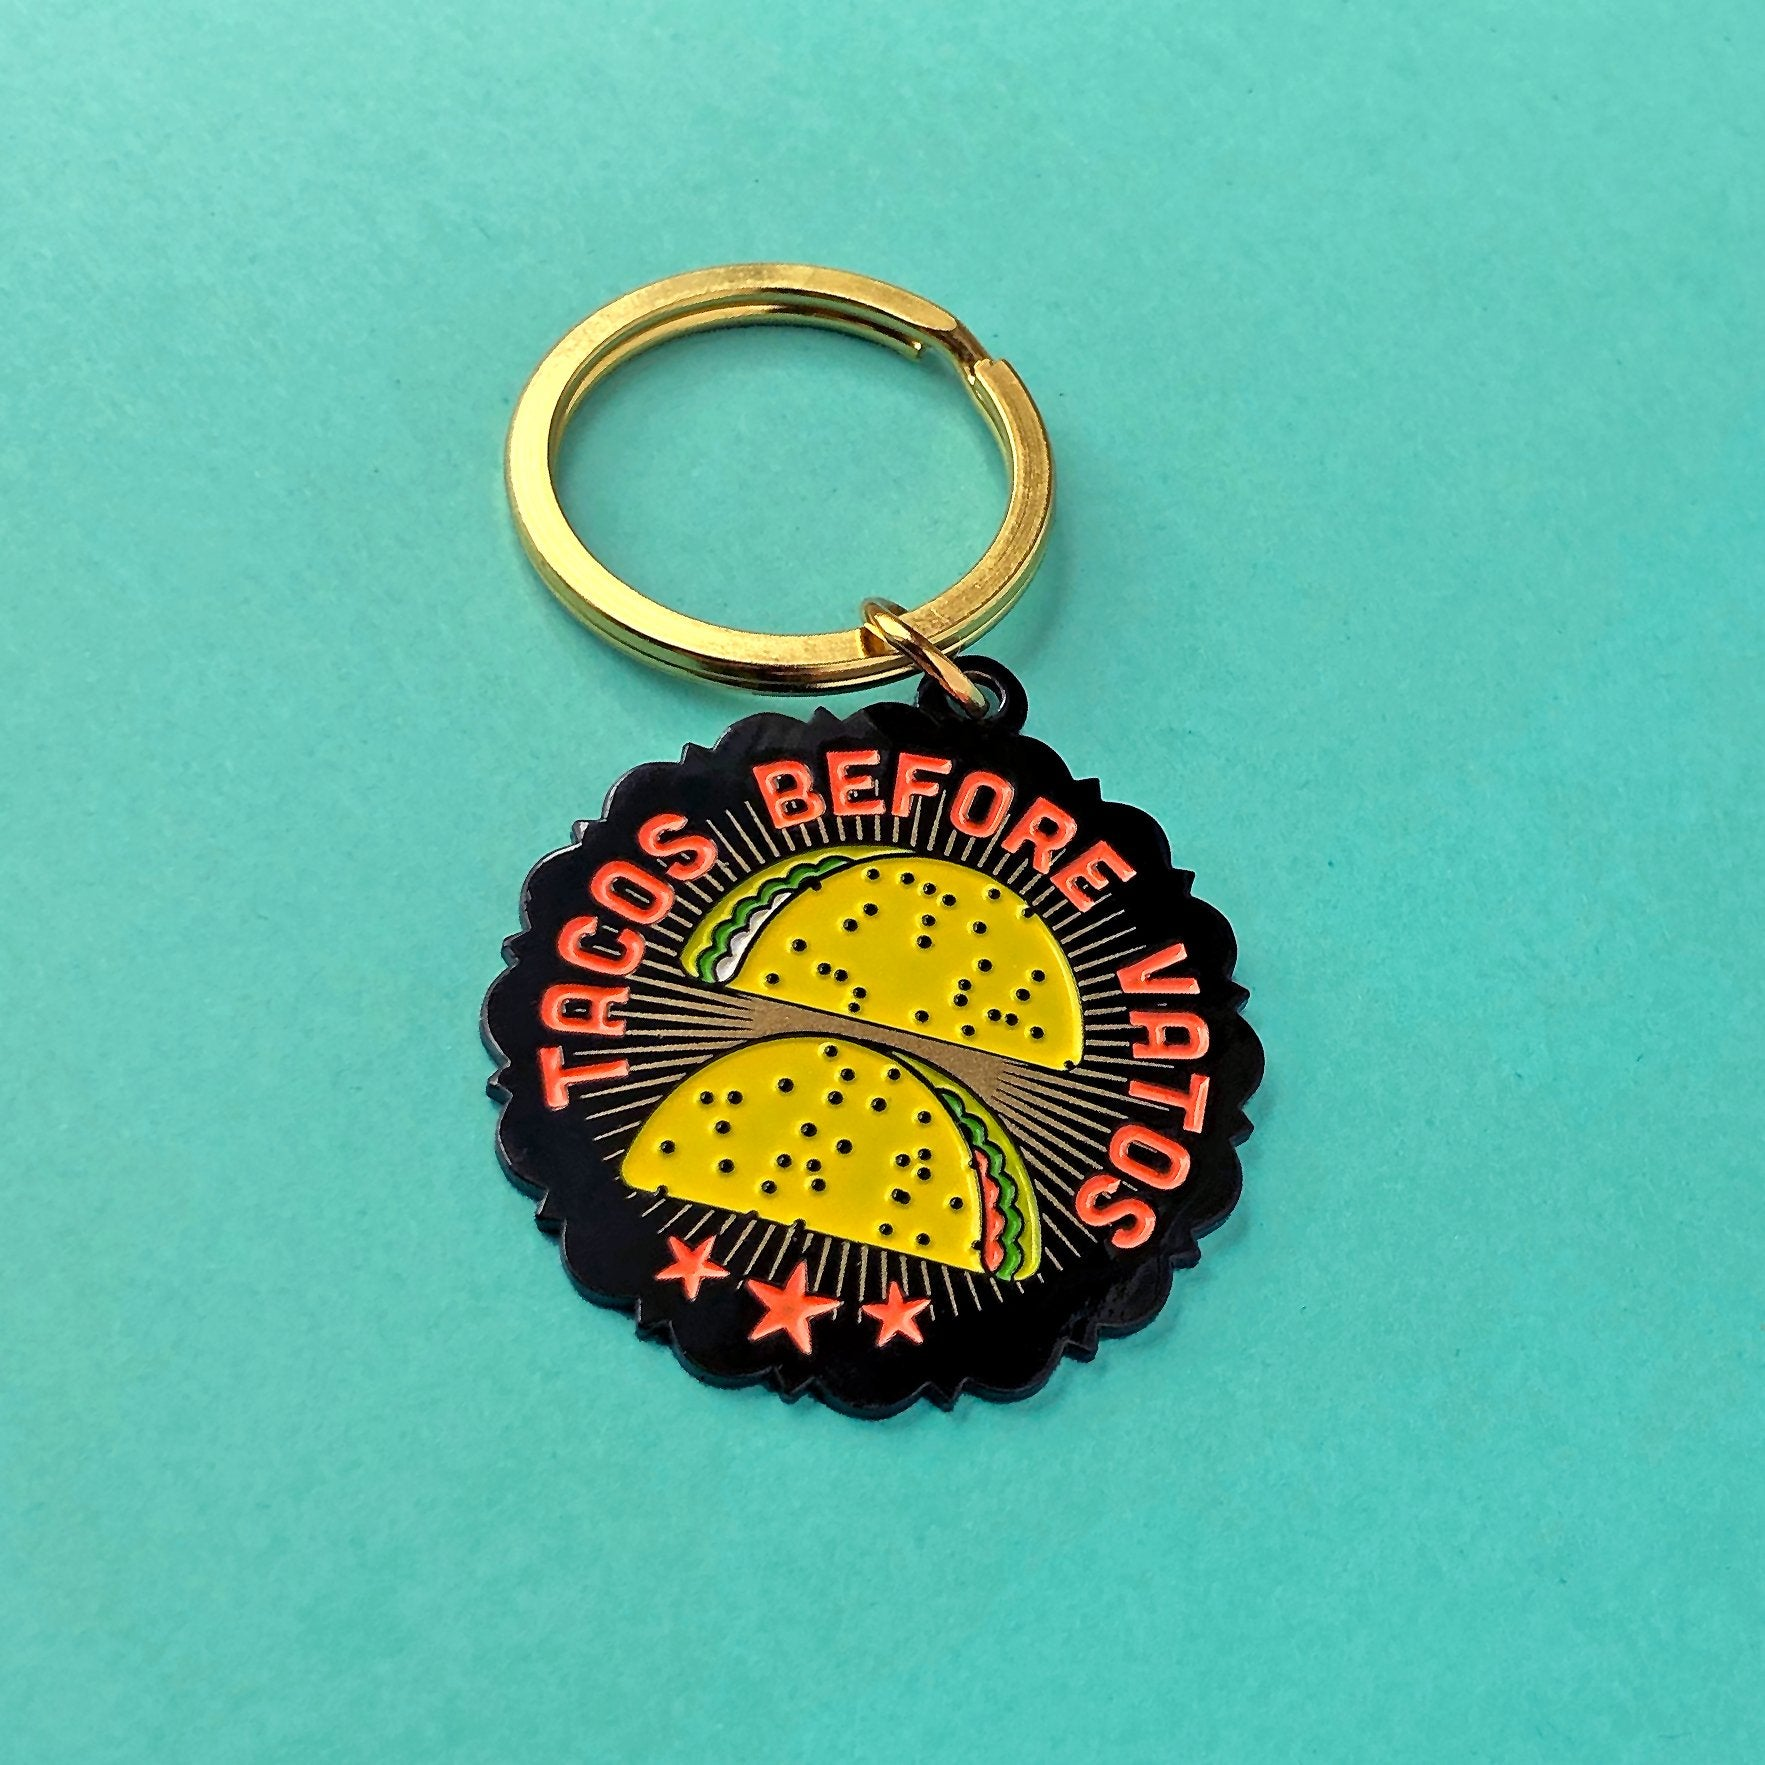 Tacos Before Vatos Keychain